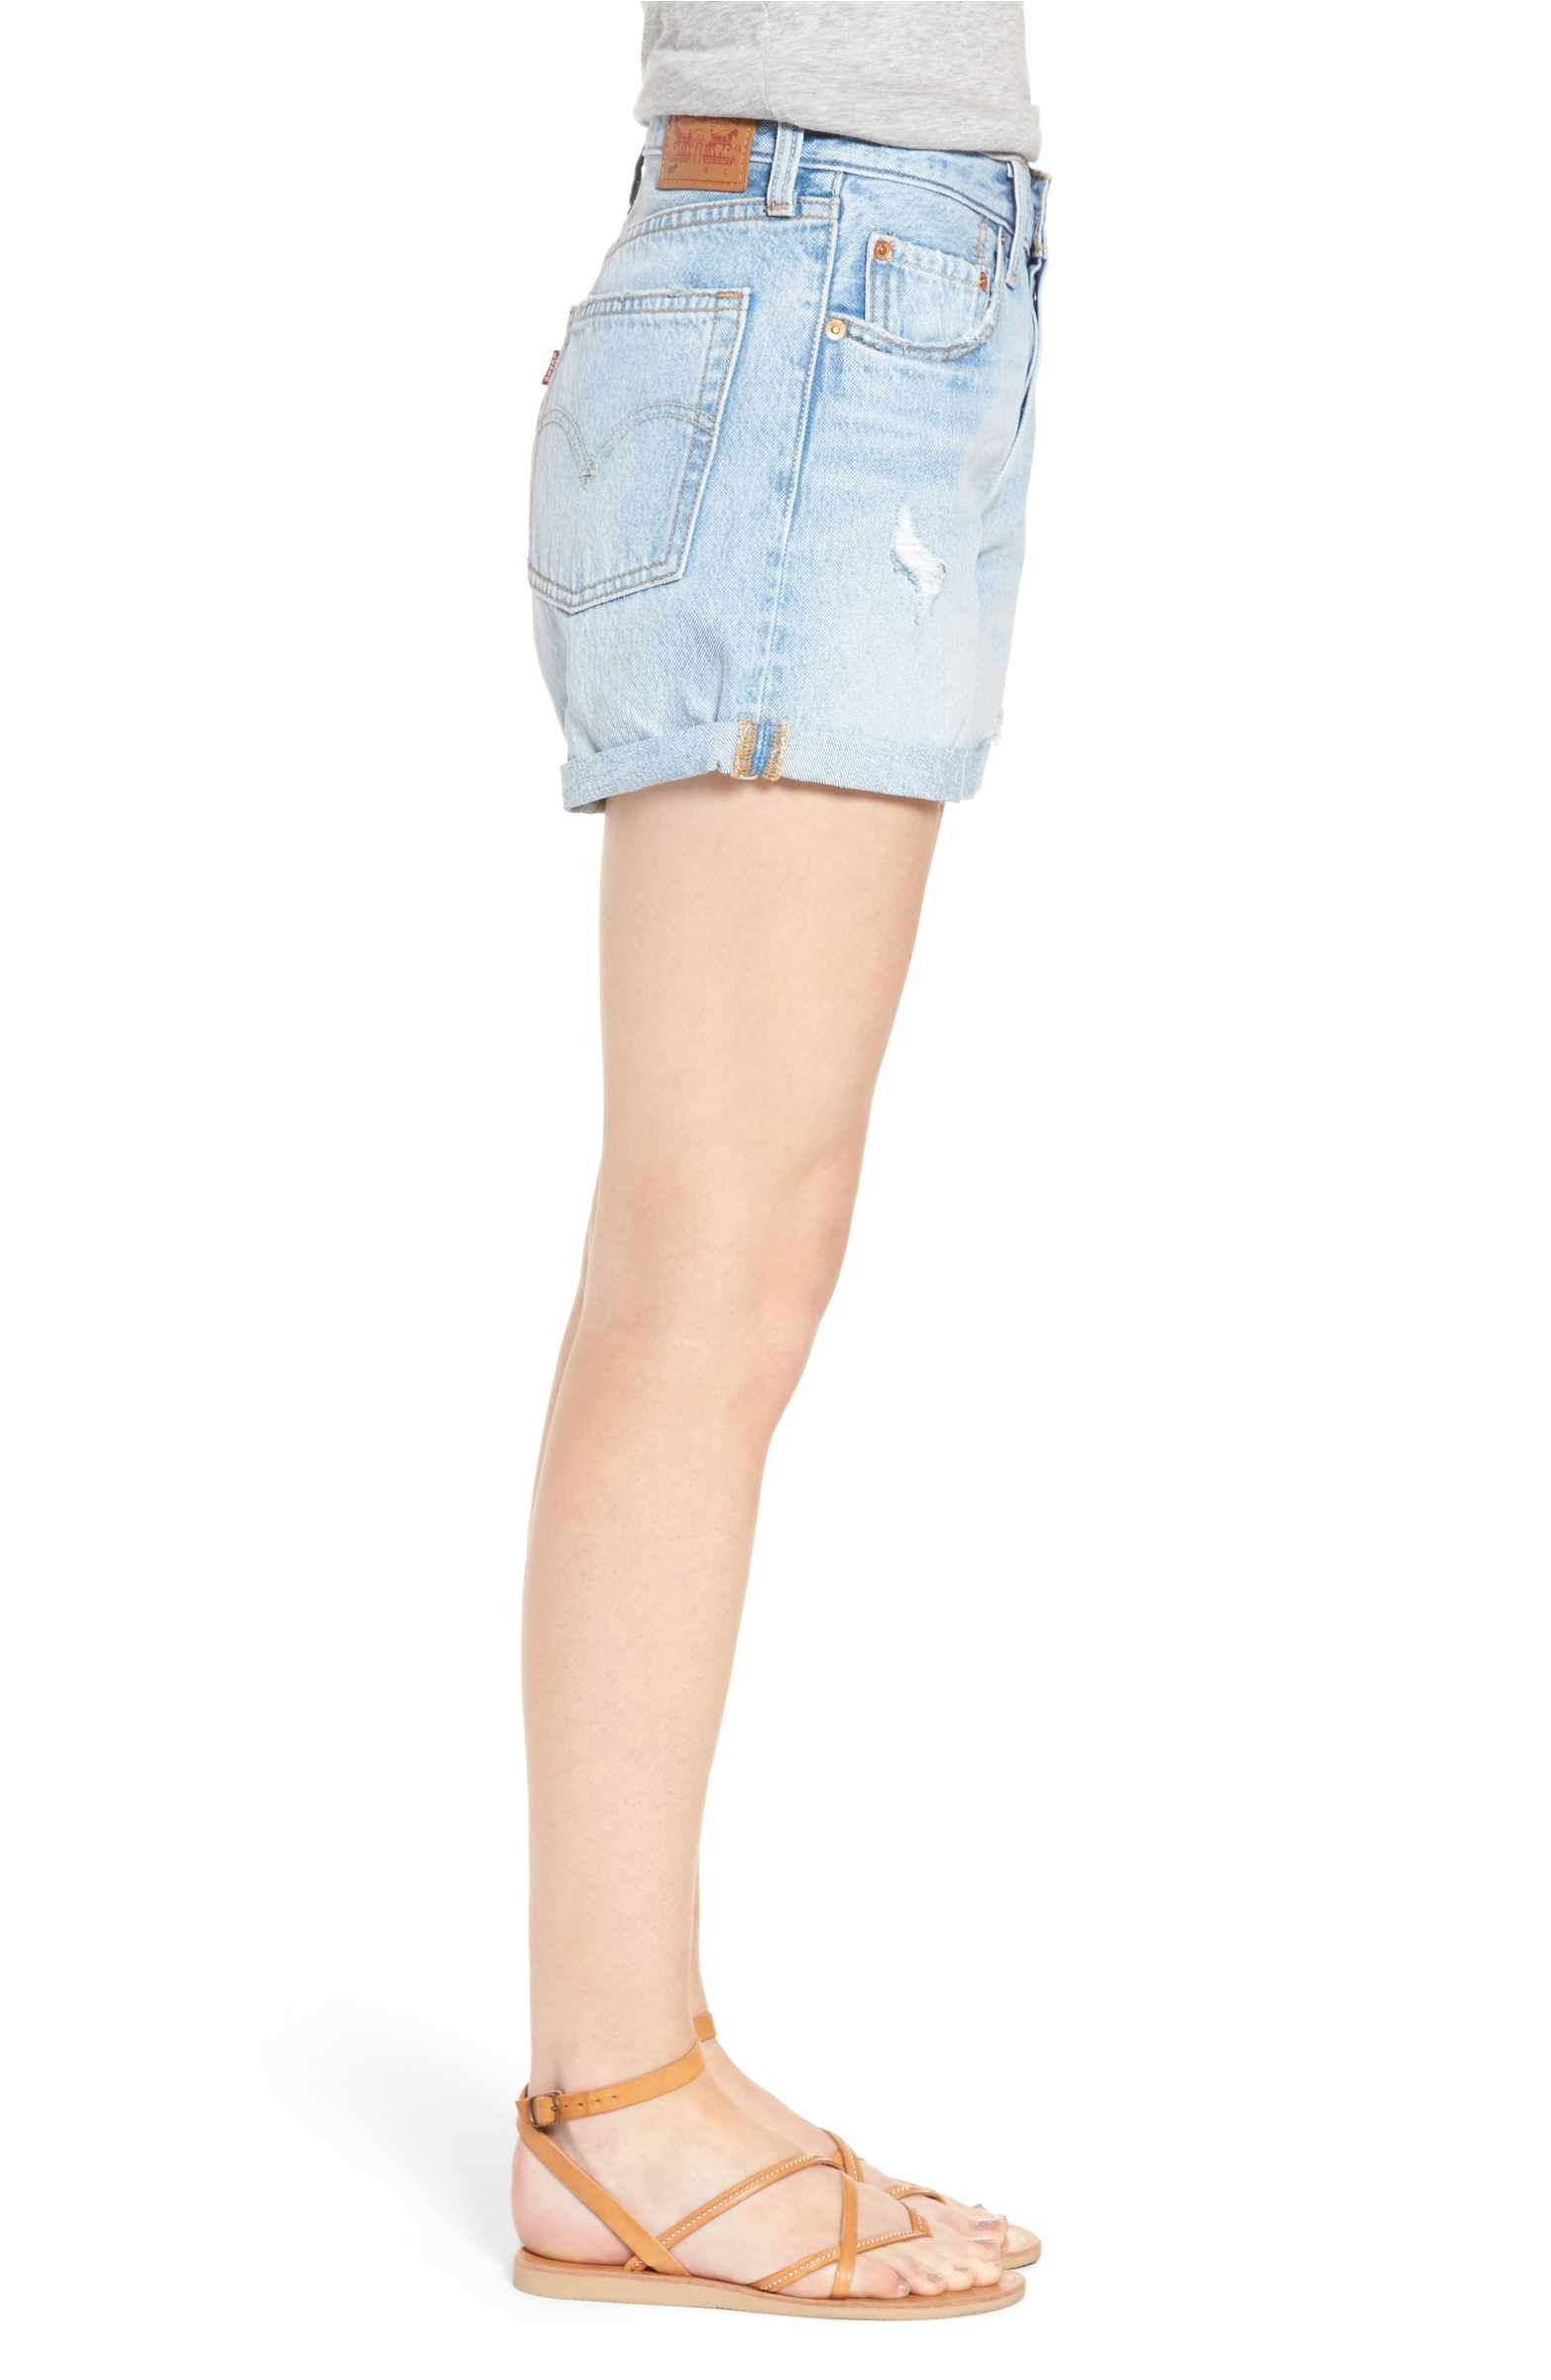 832d0204 Main Image - Levi's® 501® Cuffed Long Denim Shorts (North Beach Blues)